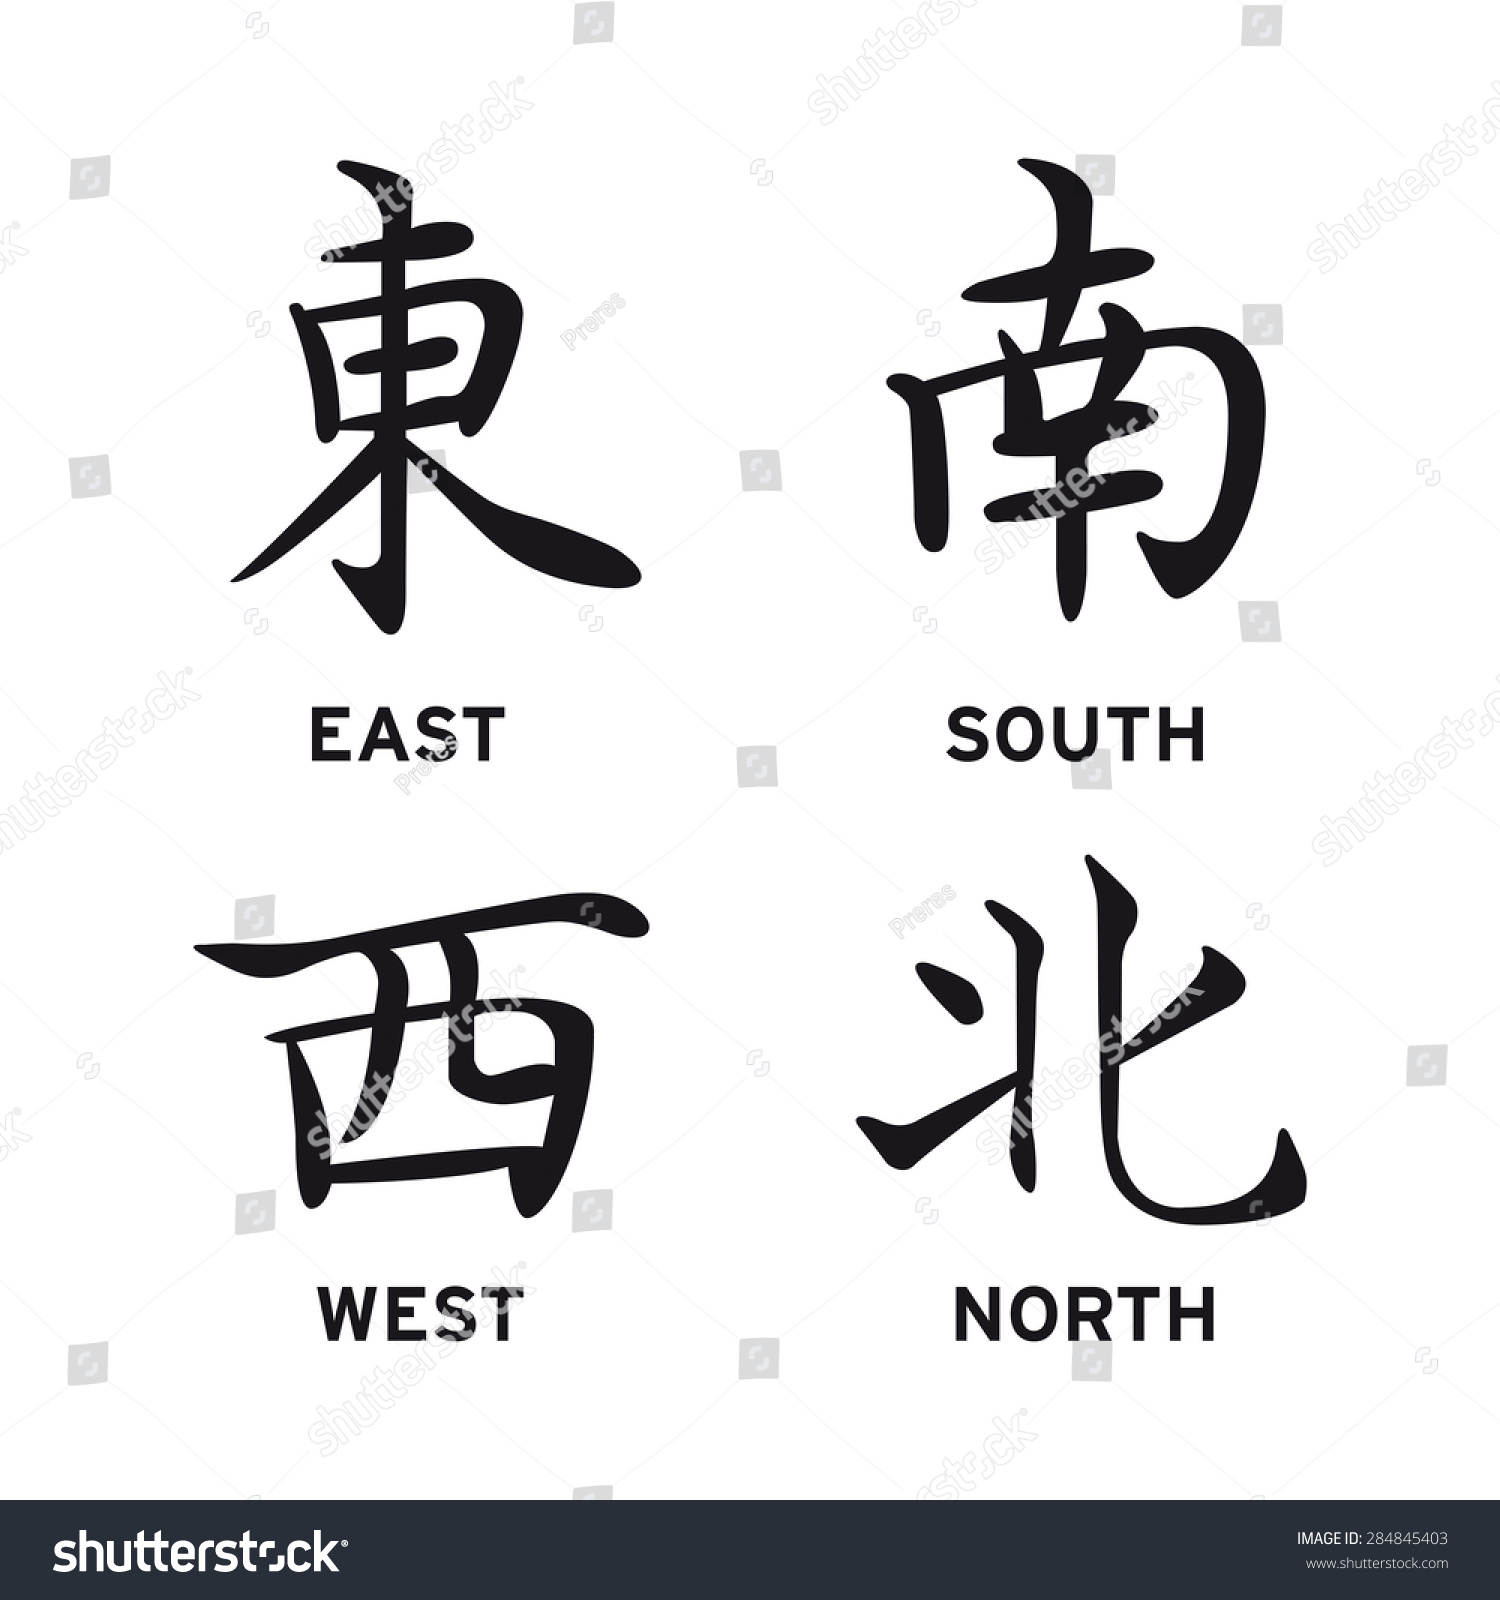 Chinese symbols for hope gallery symbol and sign ideas symbol for faith hope and love image collections symbol and sign symbols for faith hope love biocorpaavc